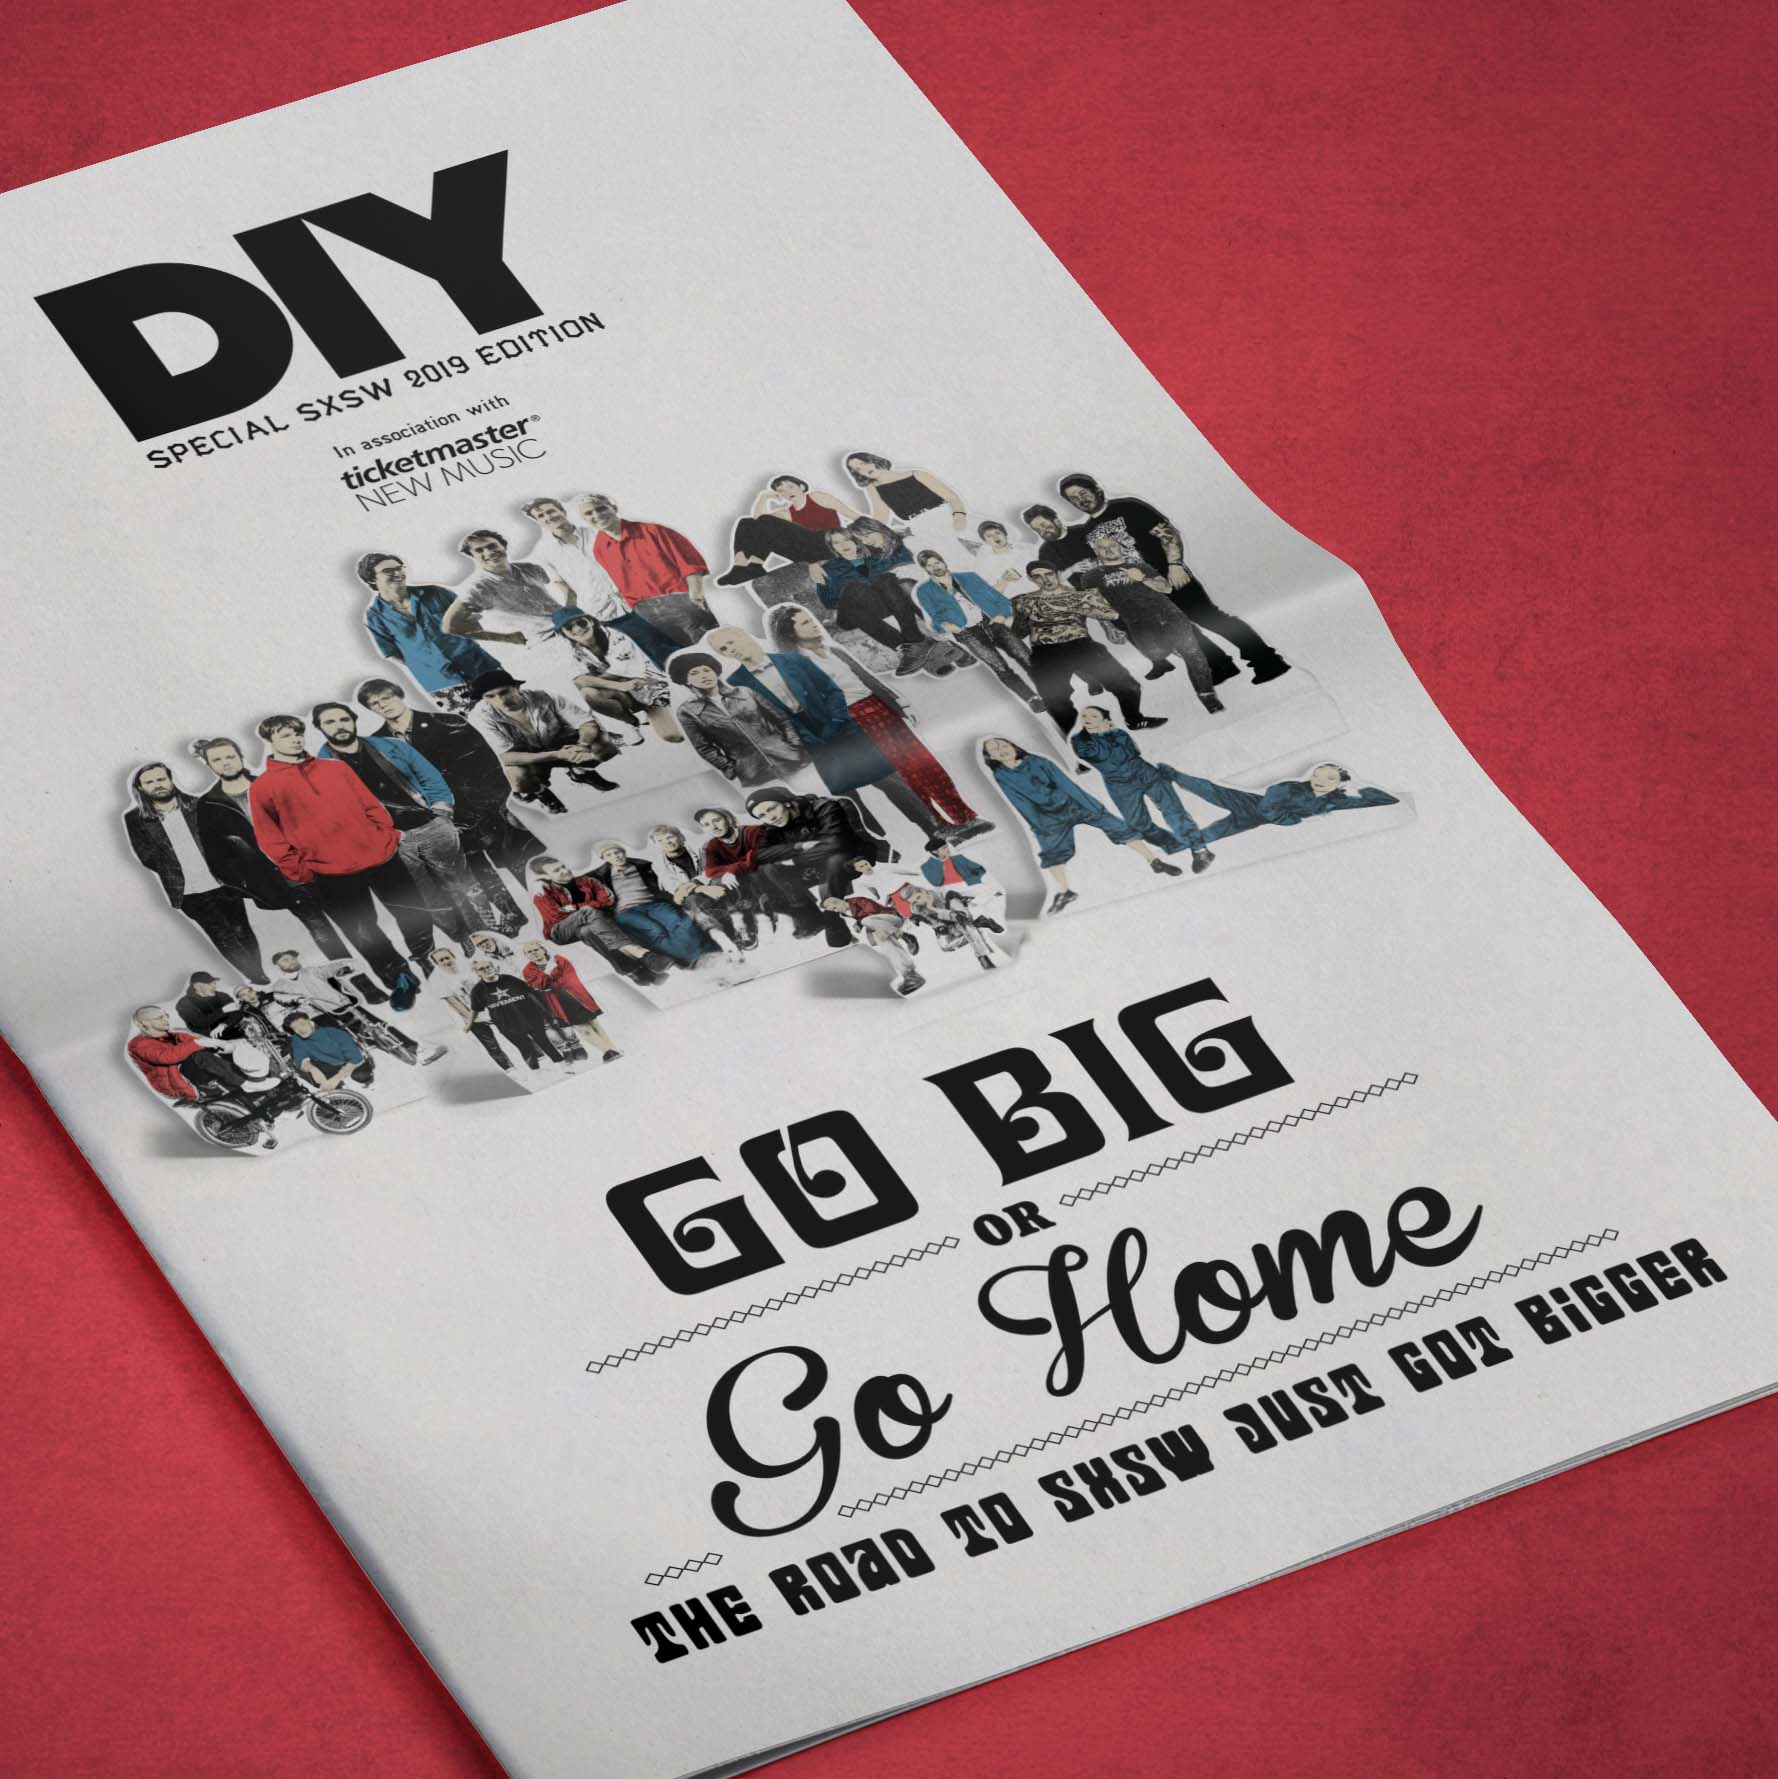 Introducing Go Big Or Go Home - DIY's special edition New Colossus & SXSW newspaper